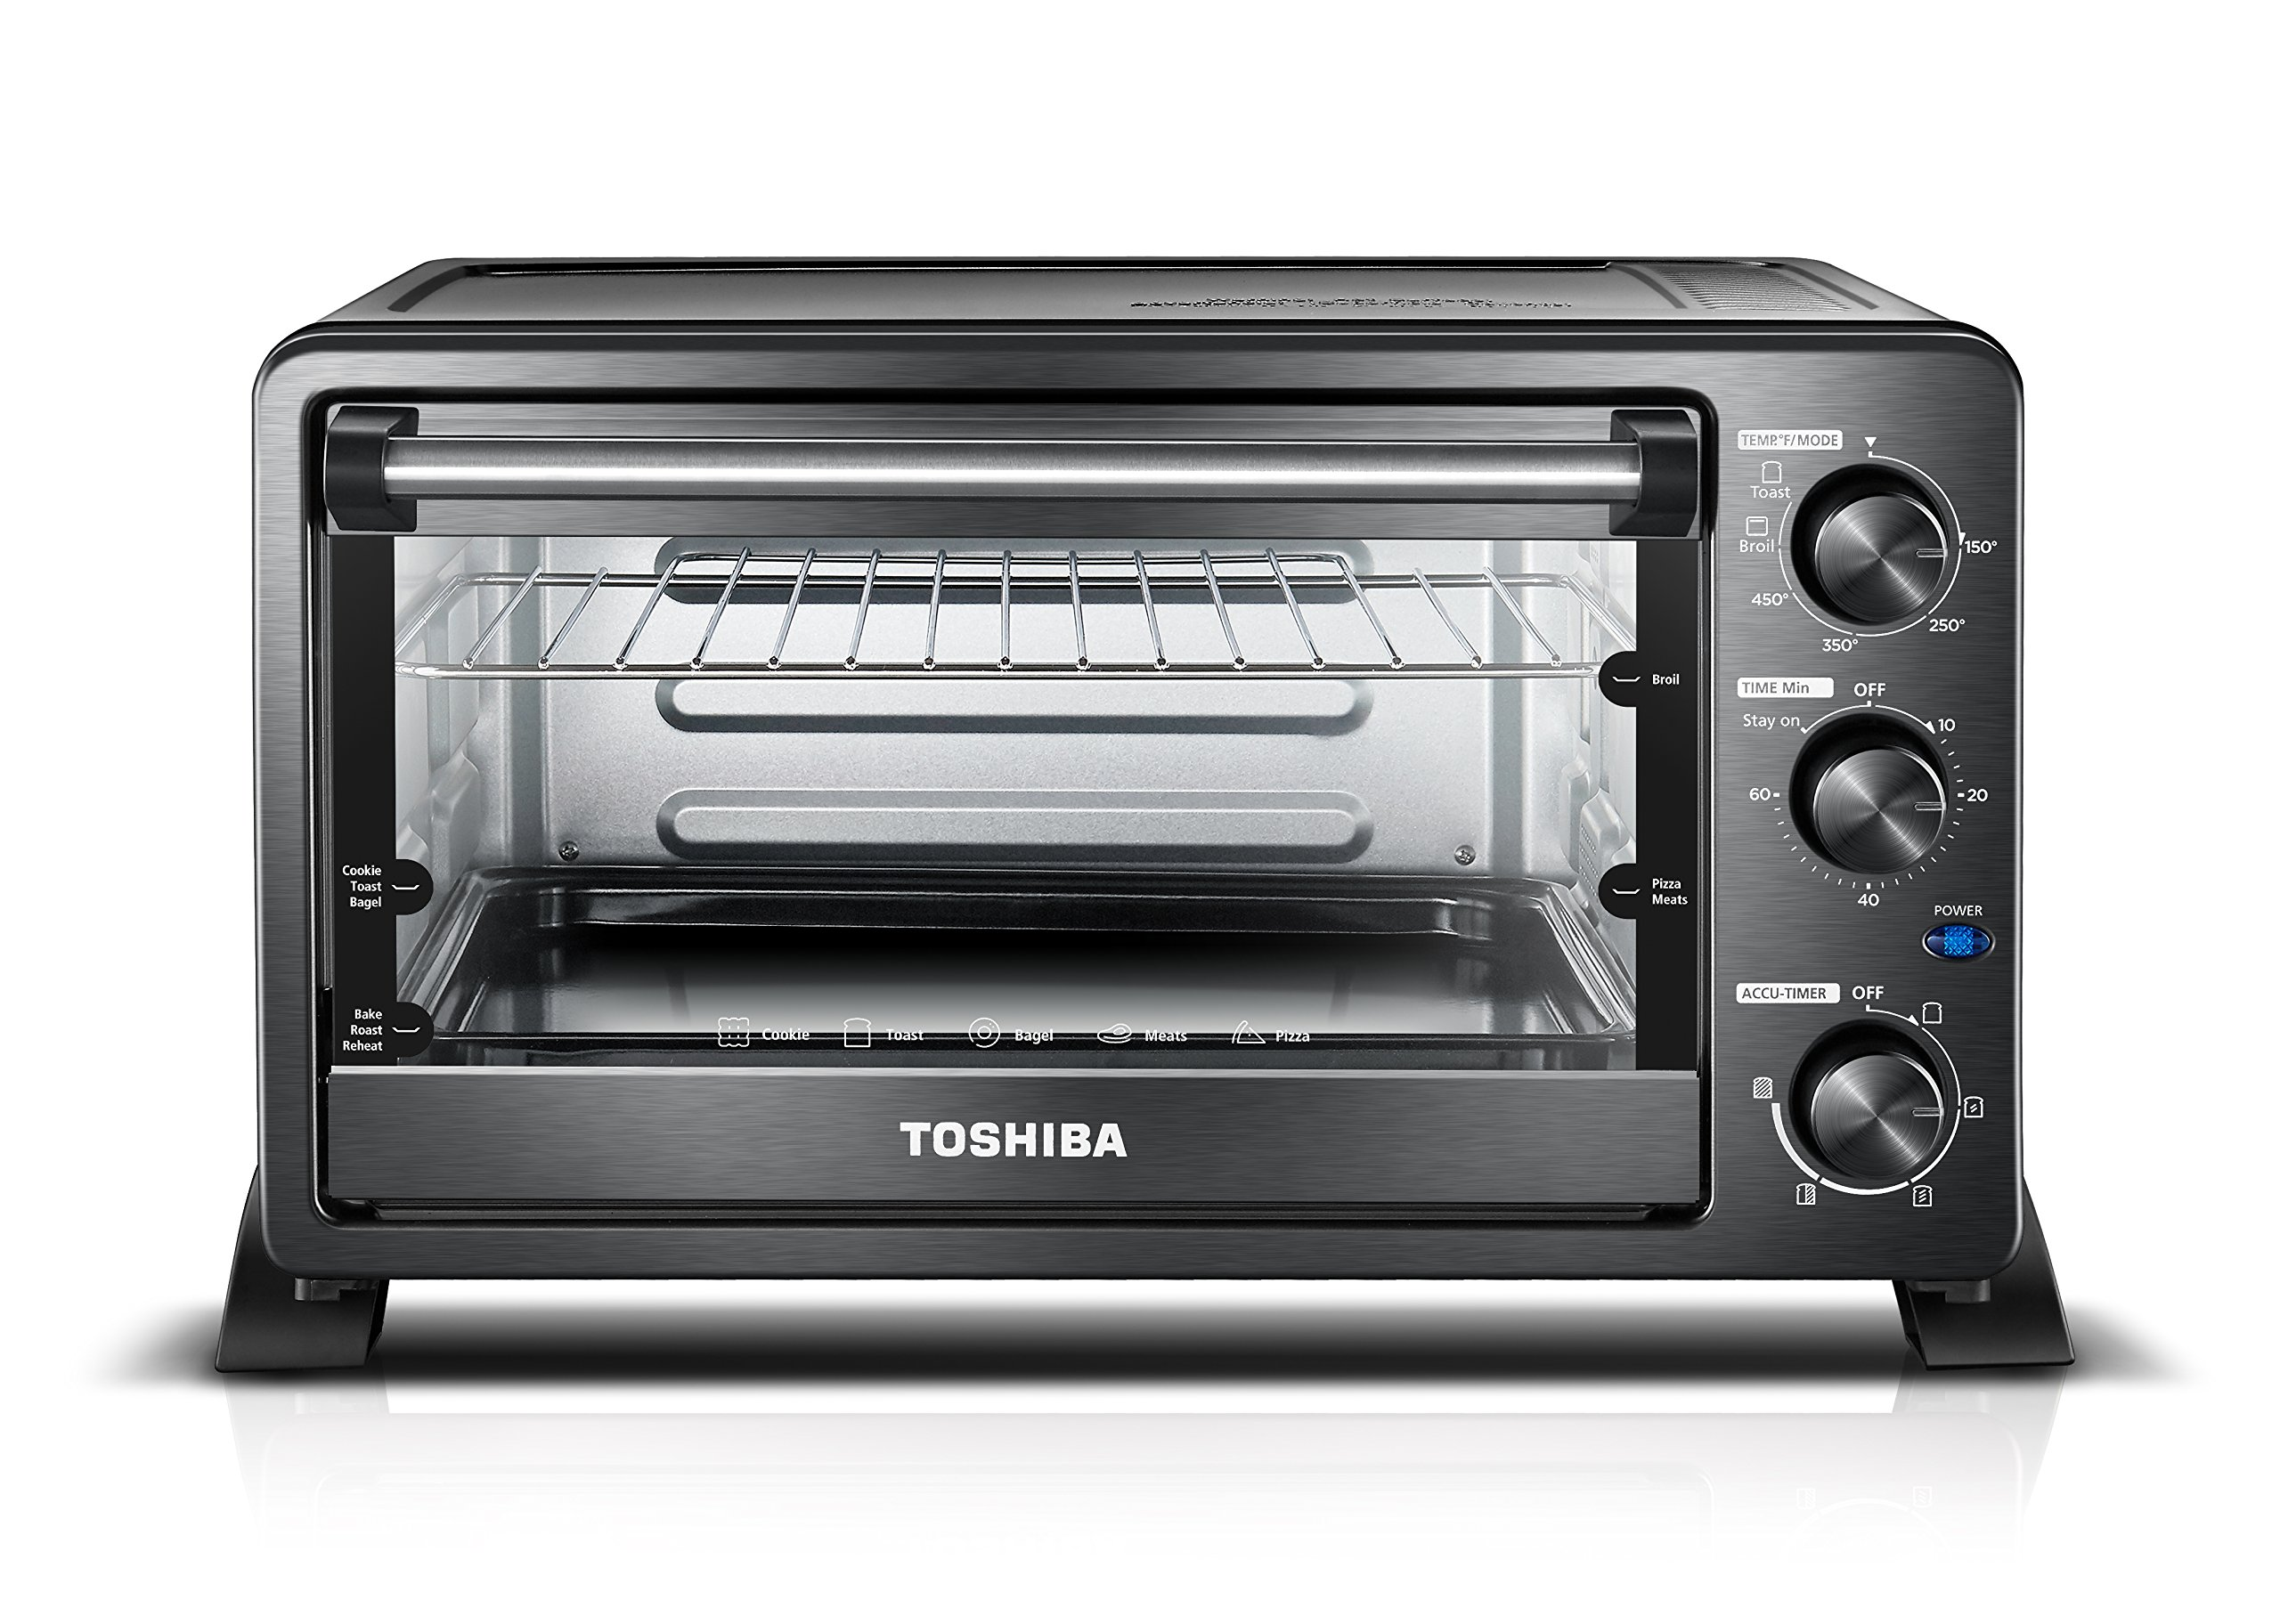 Toshiba MC25CEY-BS Mechanical Oven with Convection/Toast/Bake/Broil Function, 25 L Capacity/6 Slices Bread/12-inch Pizza, Black Stainless Steel by Toshiba